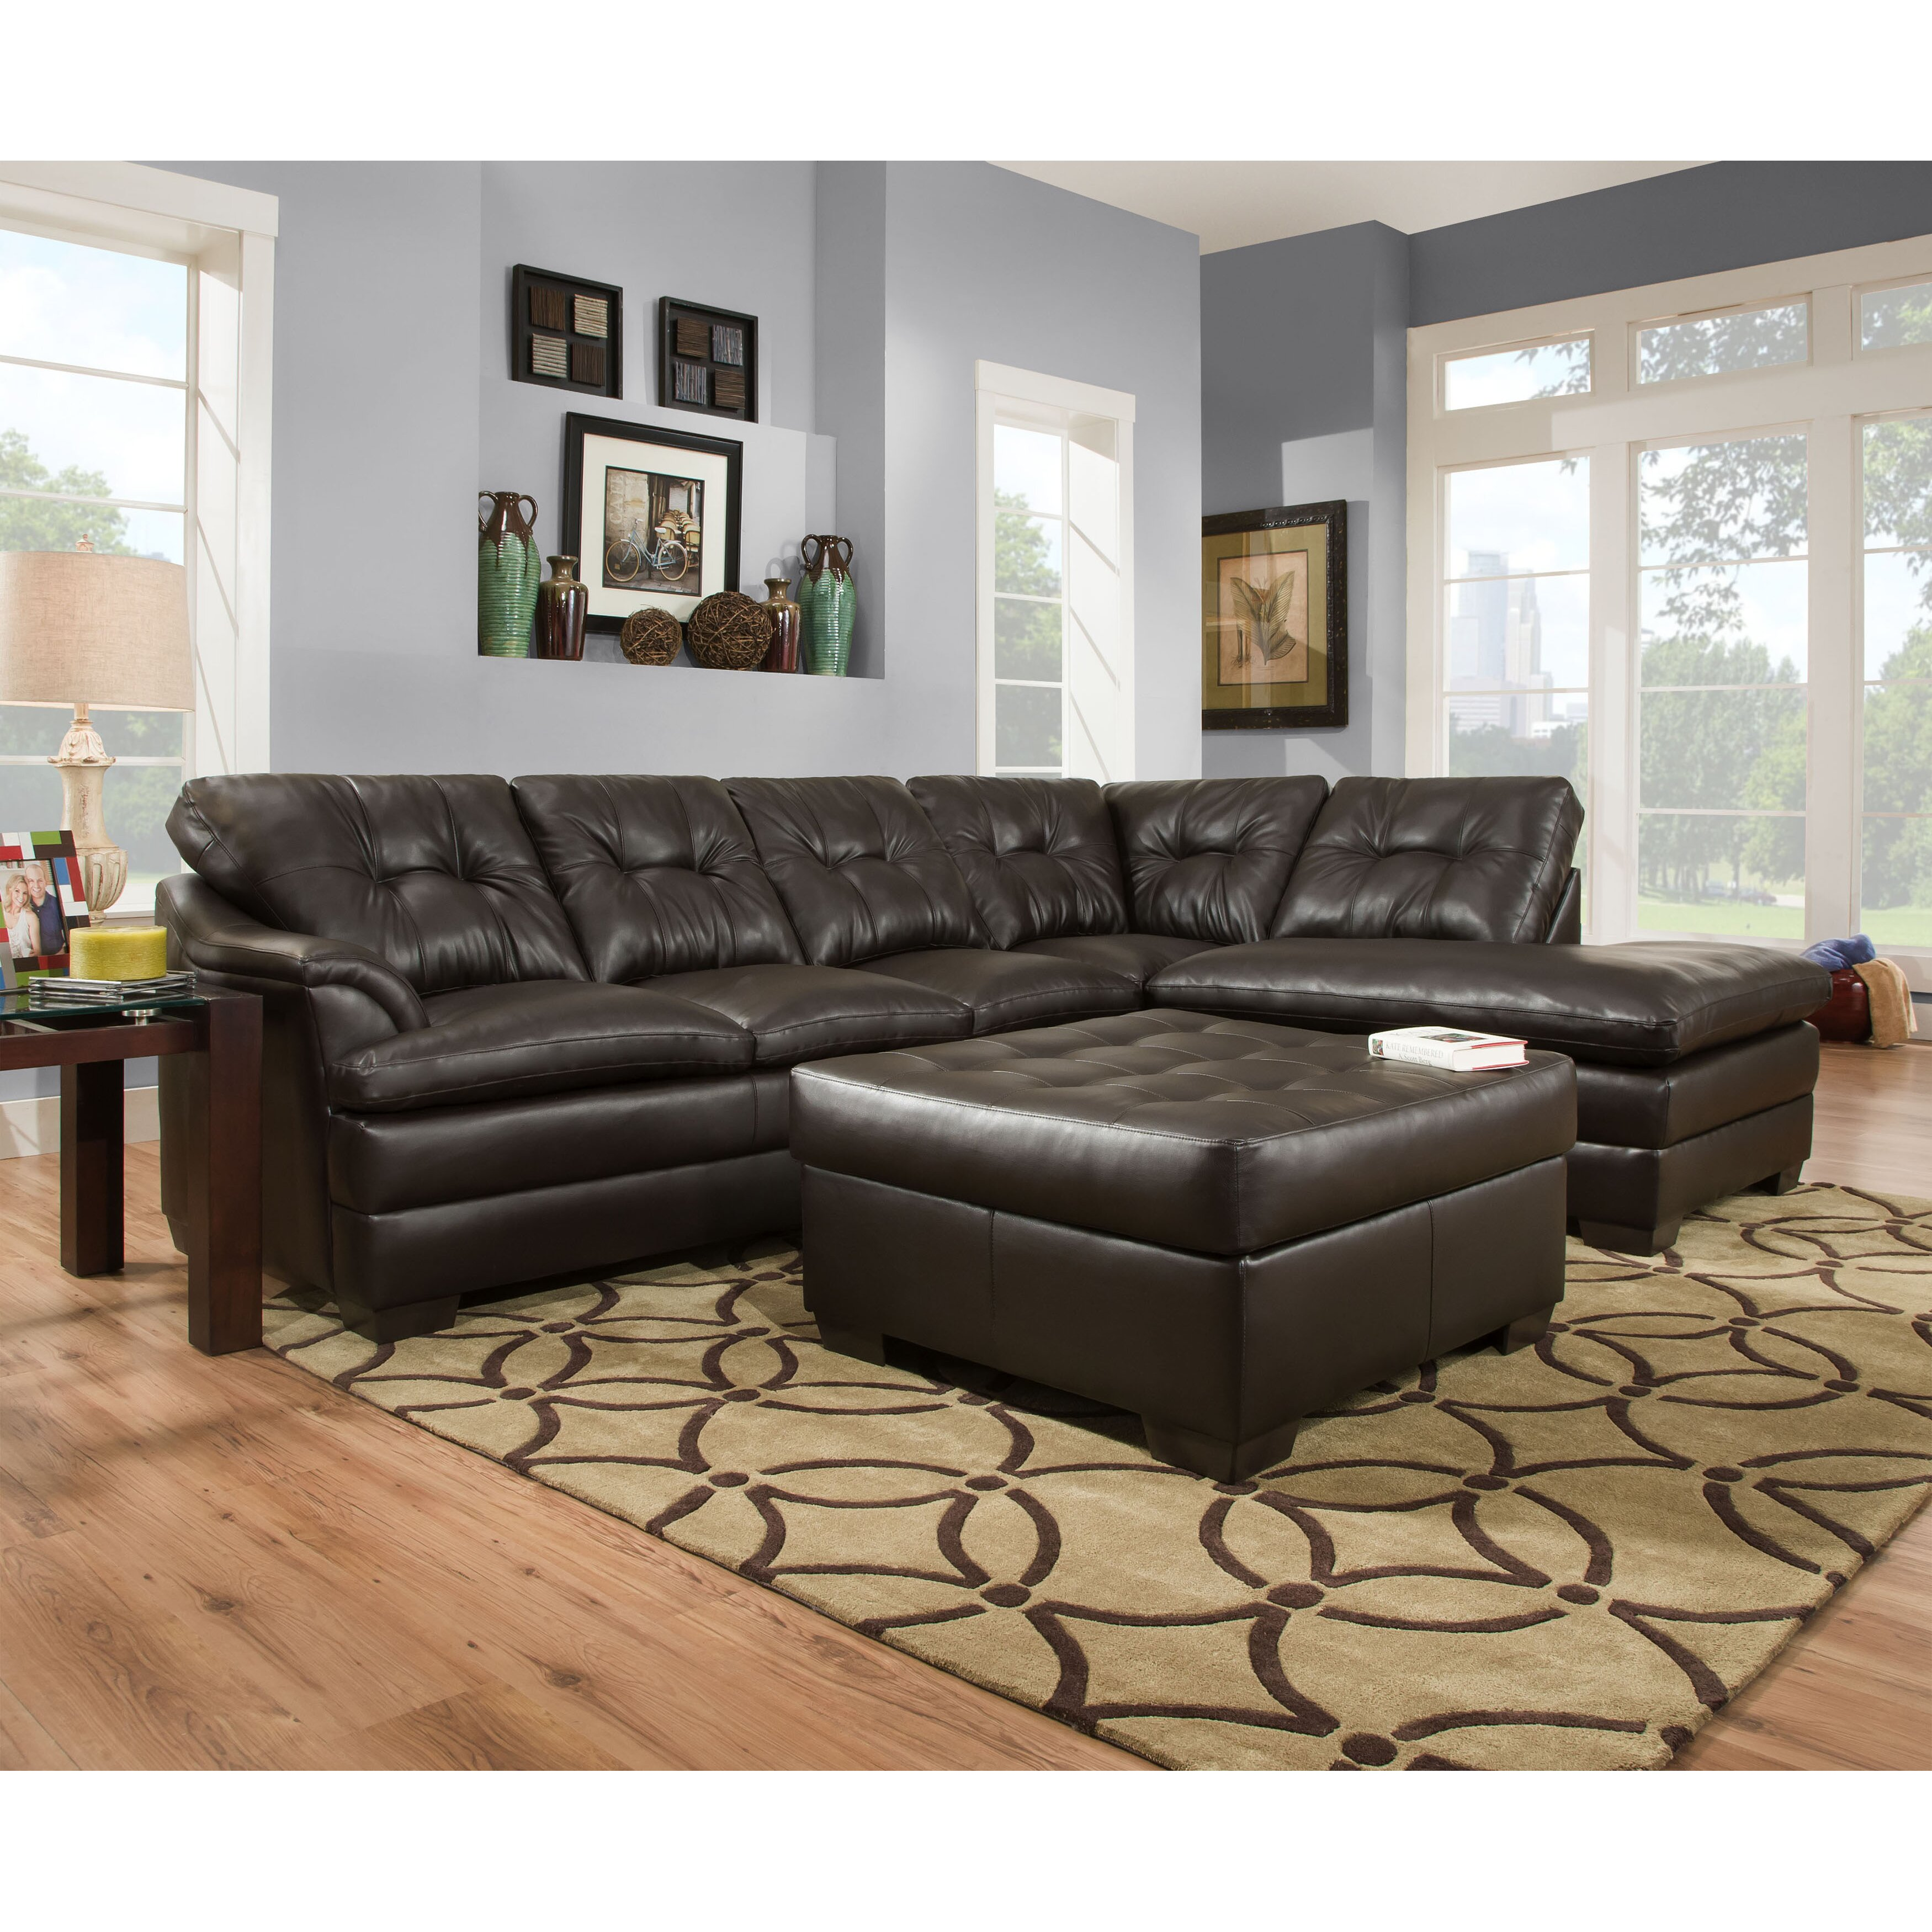 Latitude run simmons upholstery ellsworth chaise sectional for Simmons sectional sofa with chaise